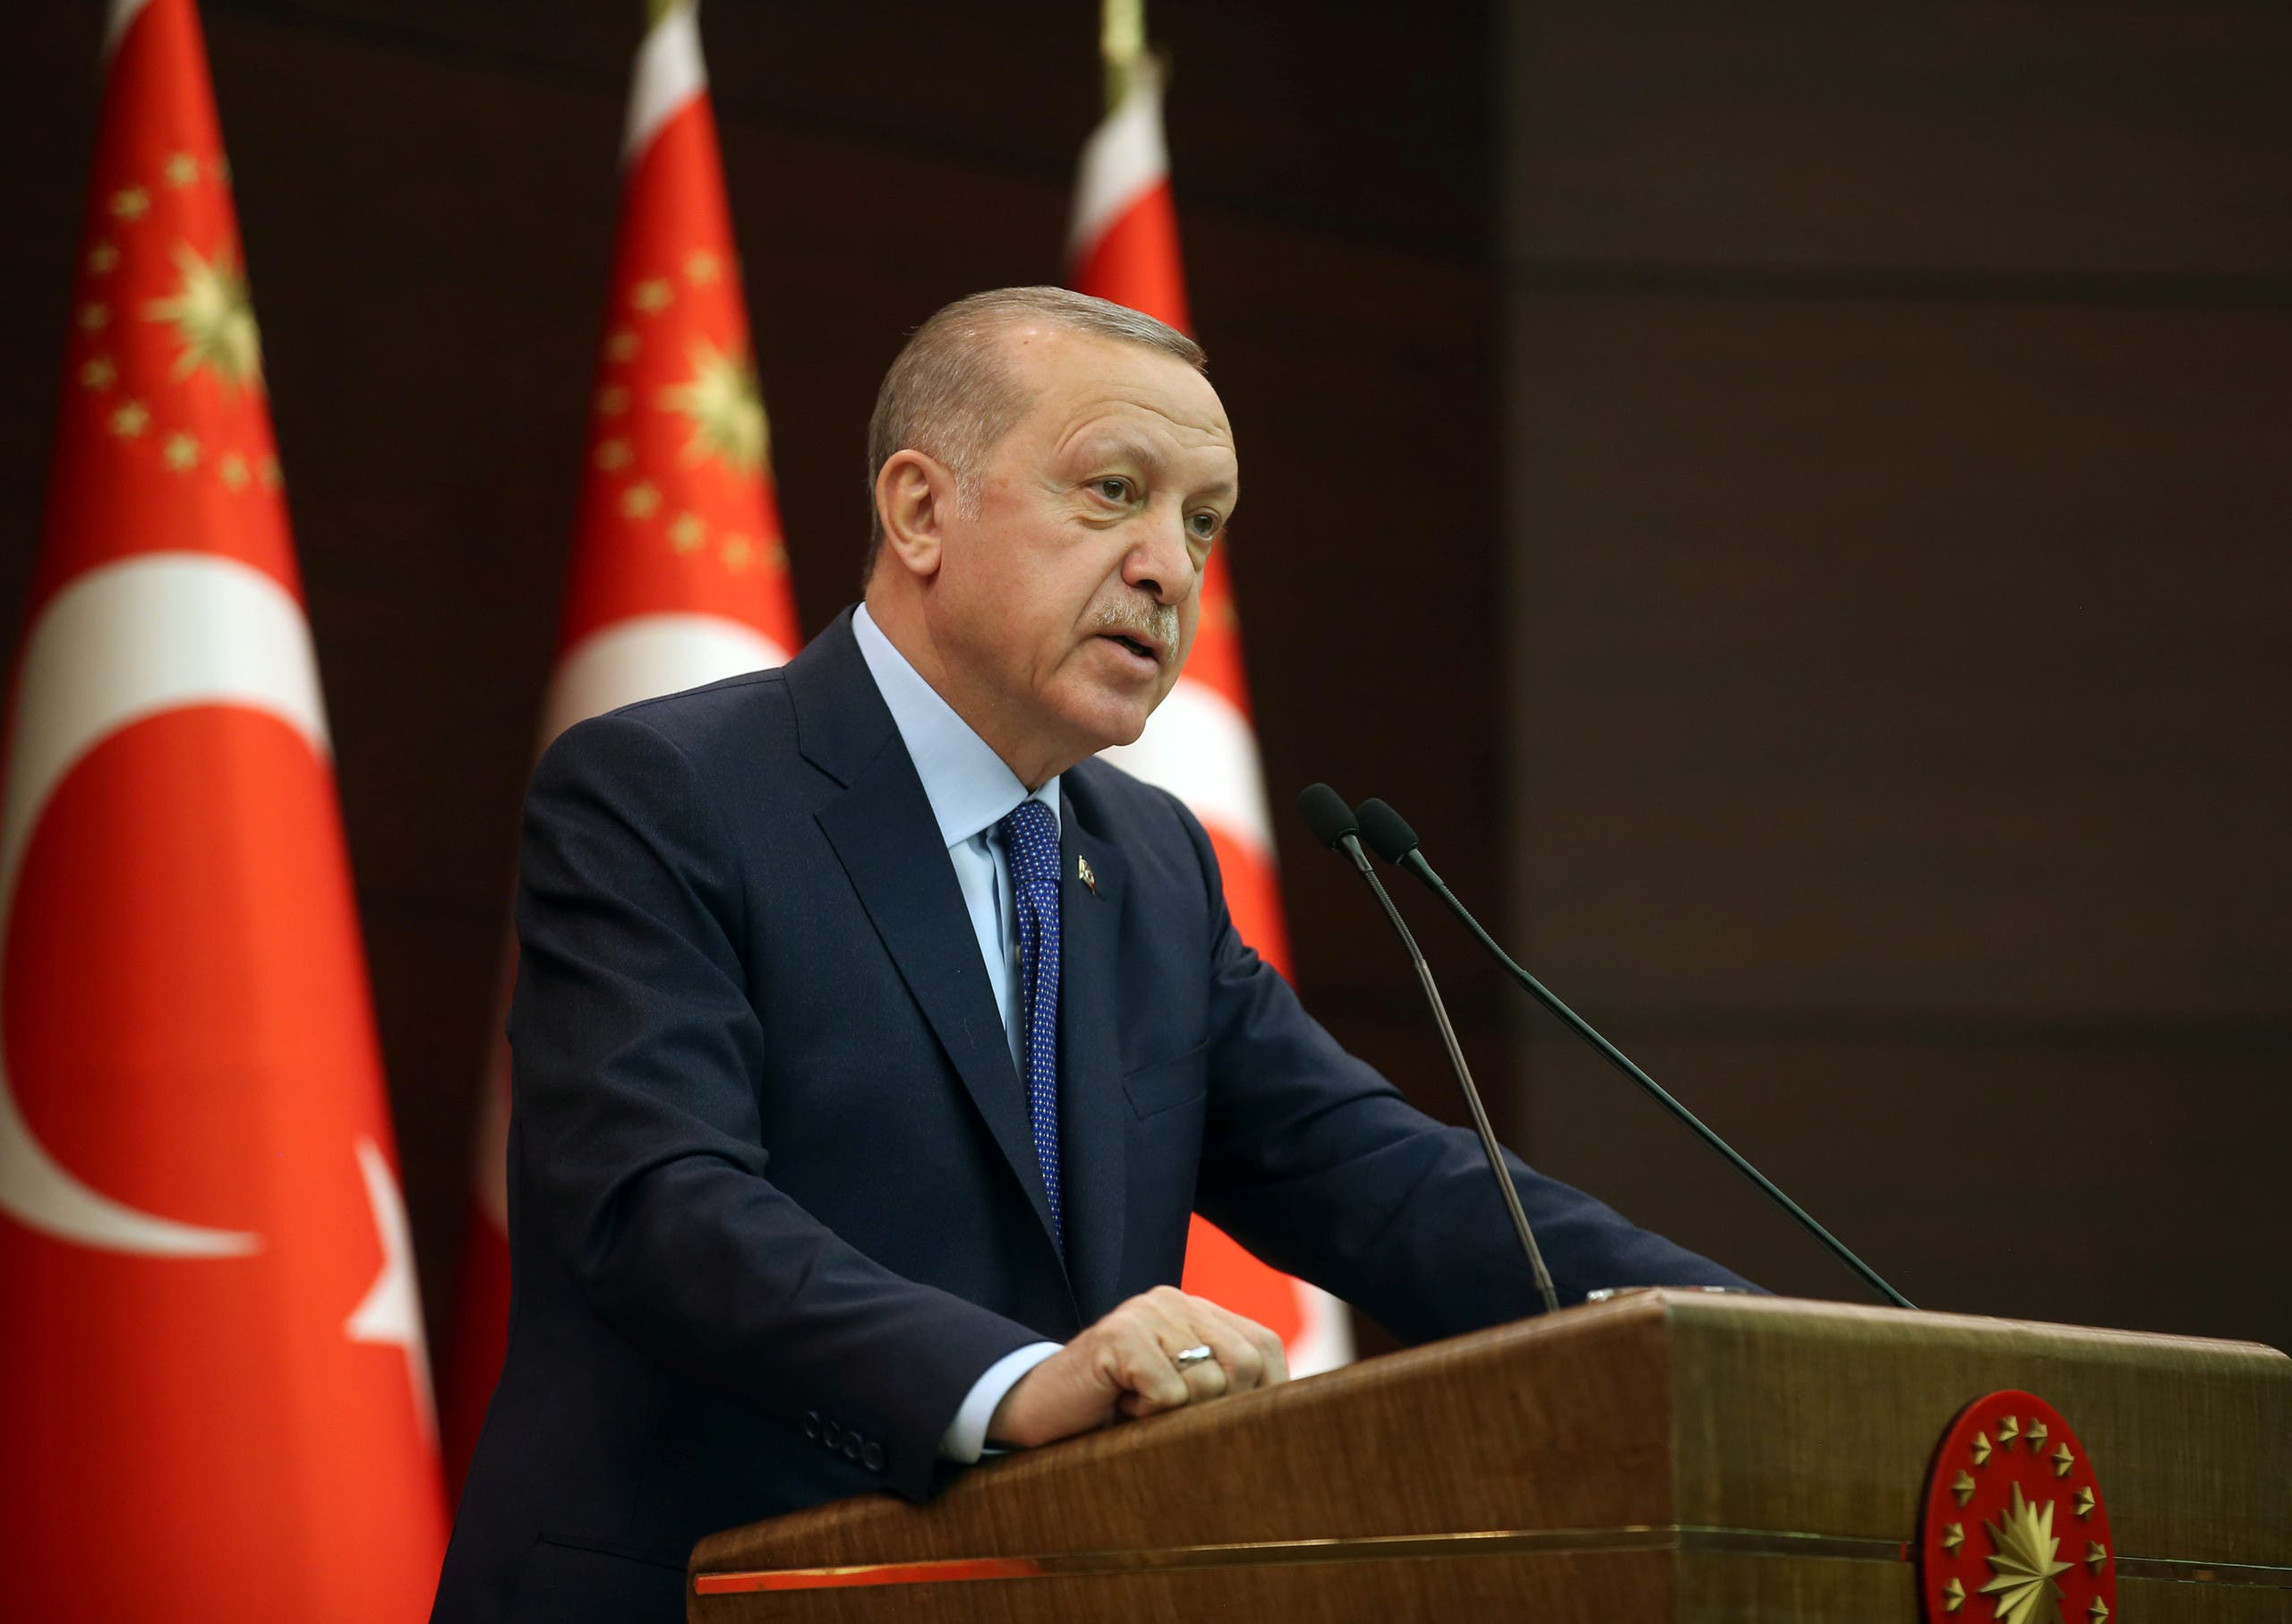 Turkish President Tayyip Erdogan talks during a news conference following a coronavirus disease (COVID-19) meeting in Ankara, Turkey, March 18, 2020. (File photo: Reuters)